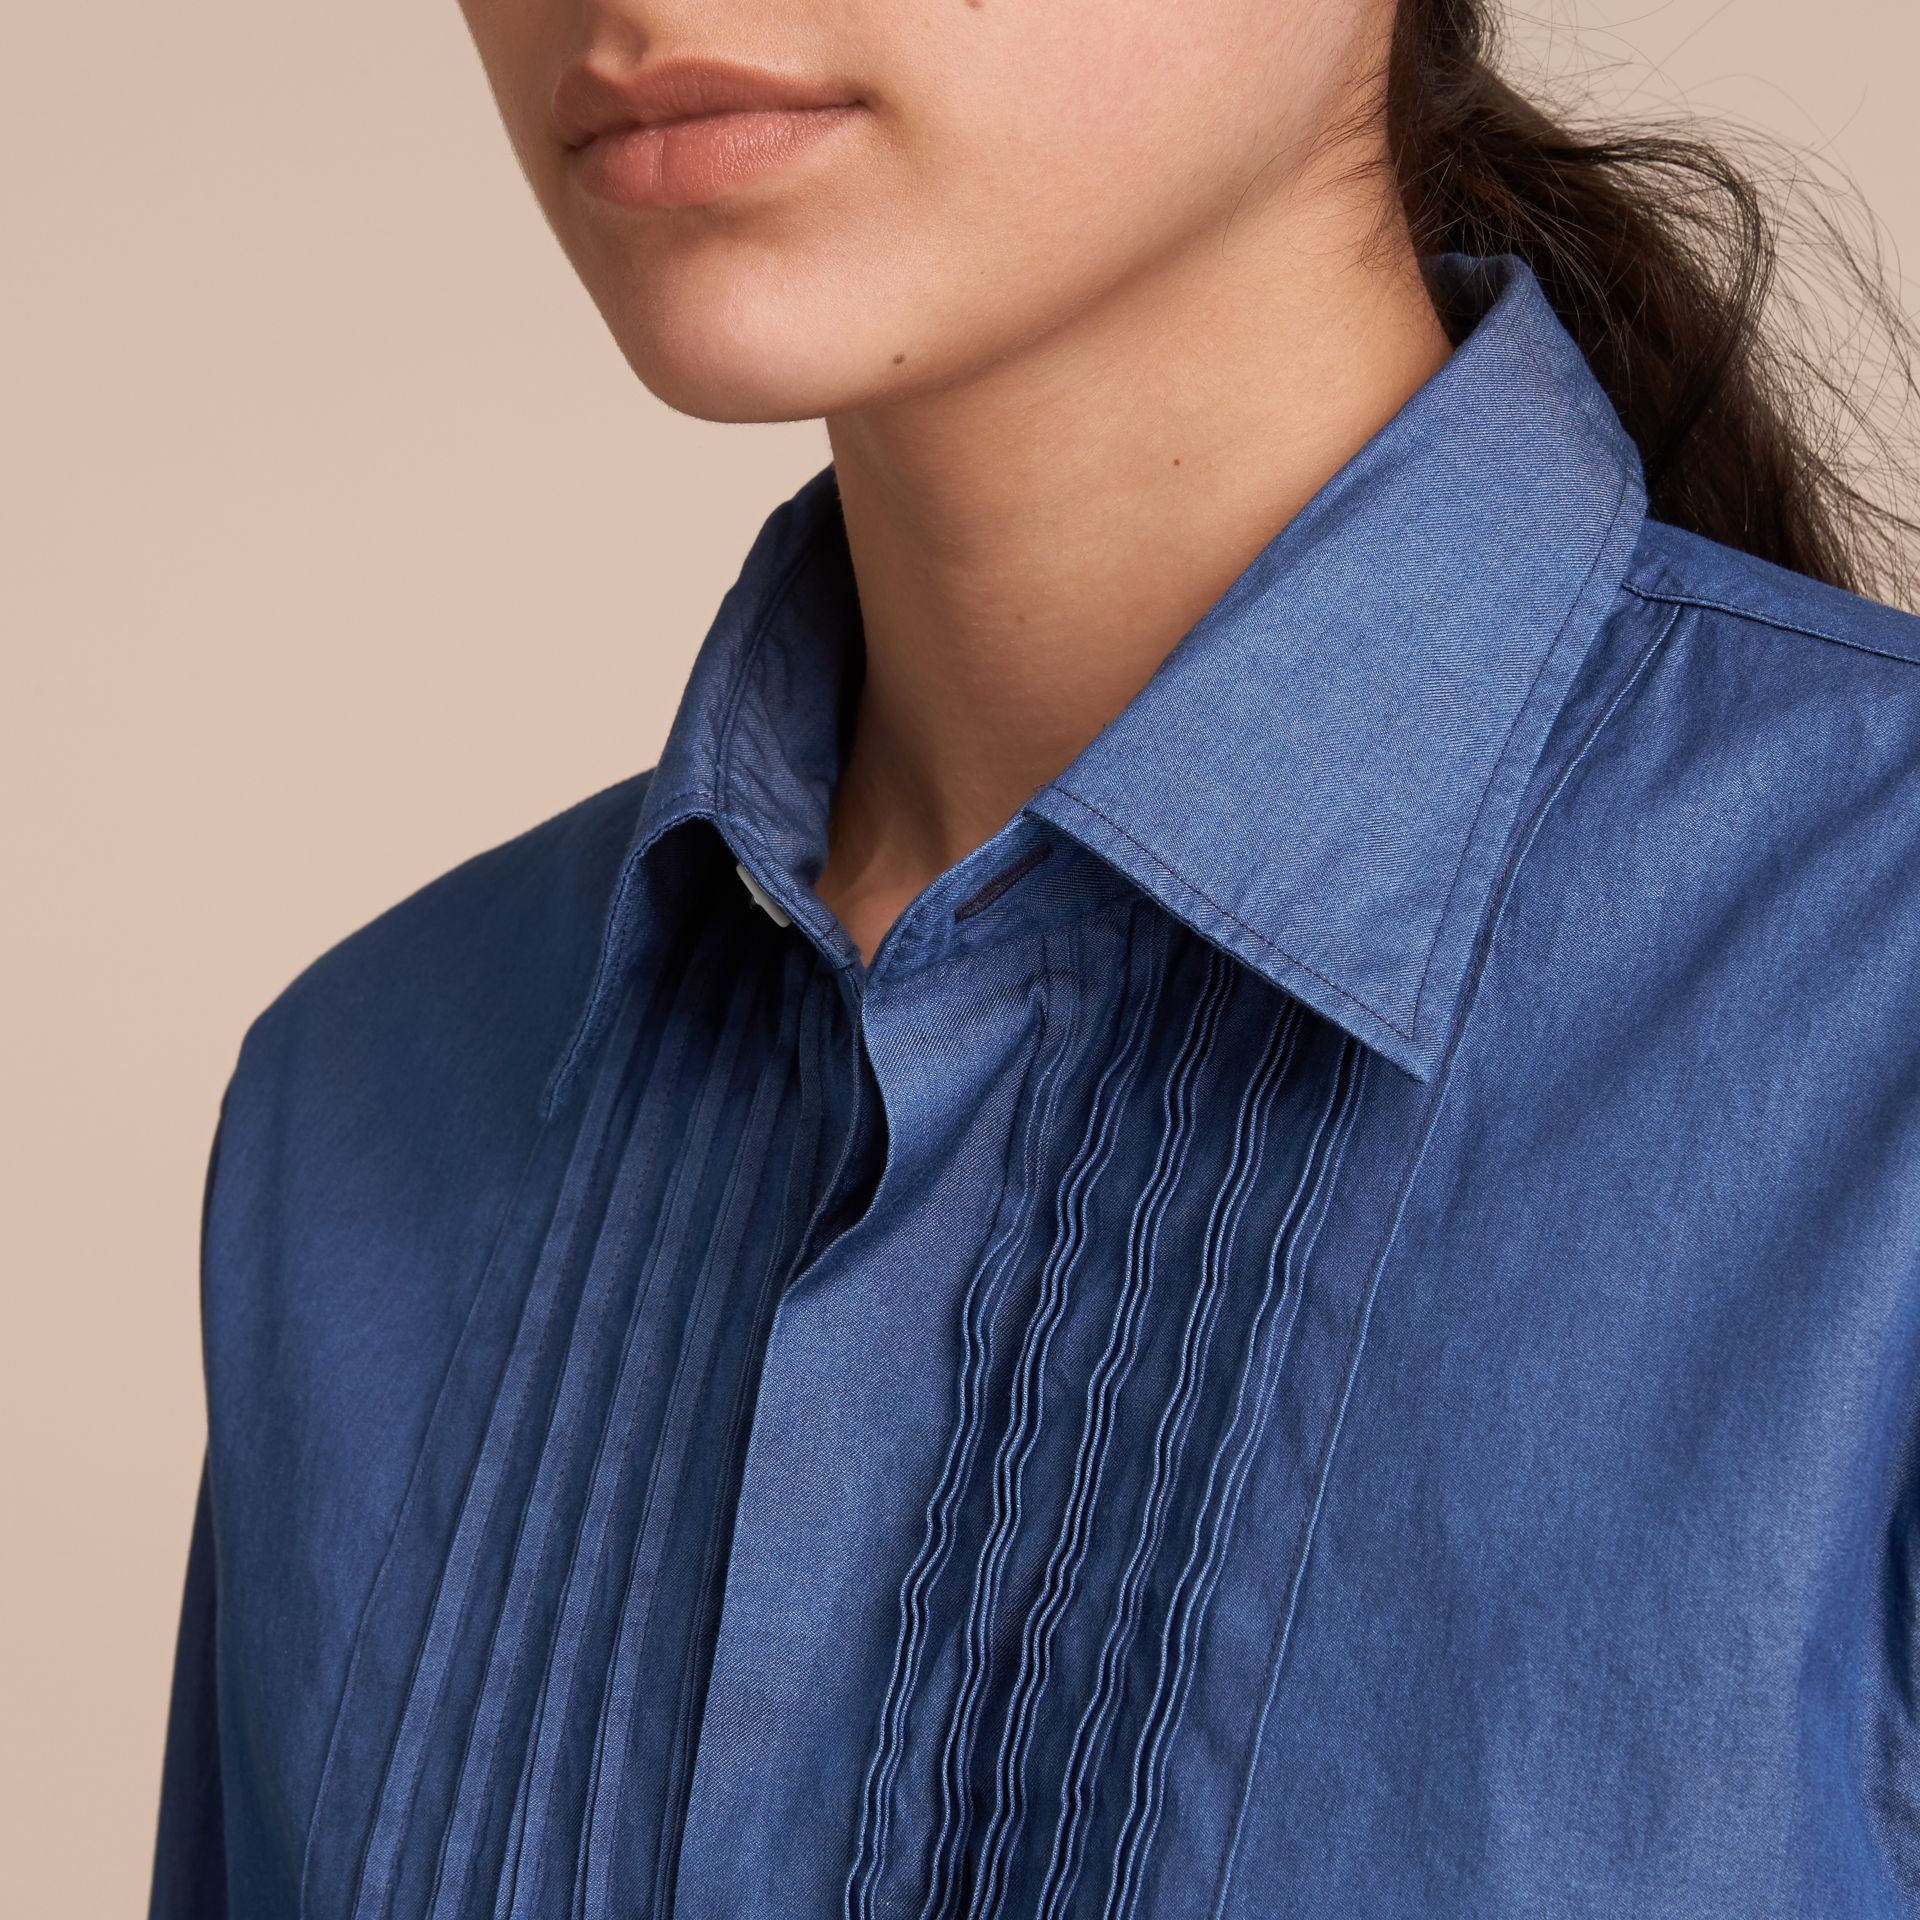 Unisex Double-cuff Pintuck Bib Cotton Shirt in Denim Blue - Women | Burberry Singapore - gallery image 5